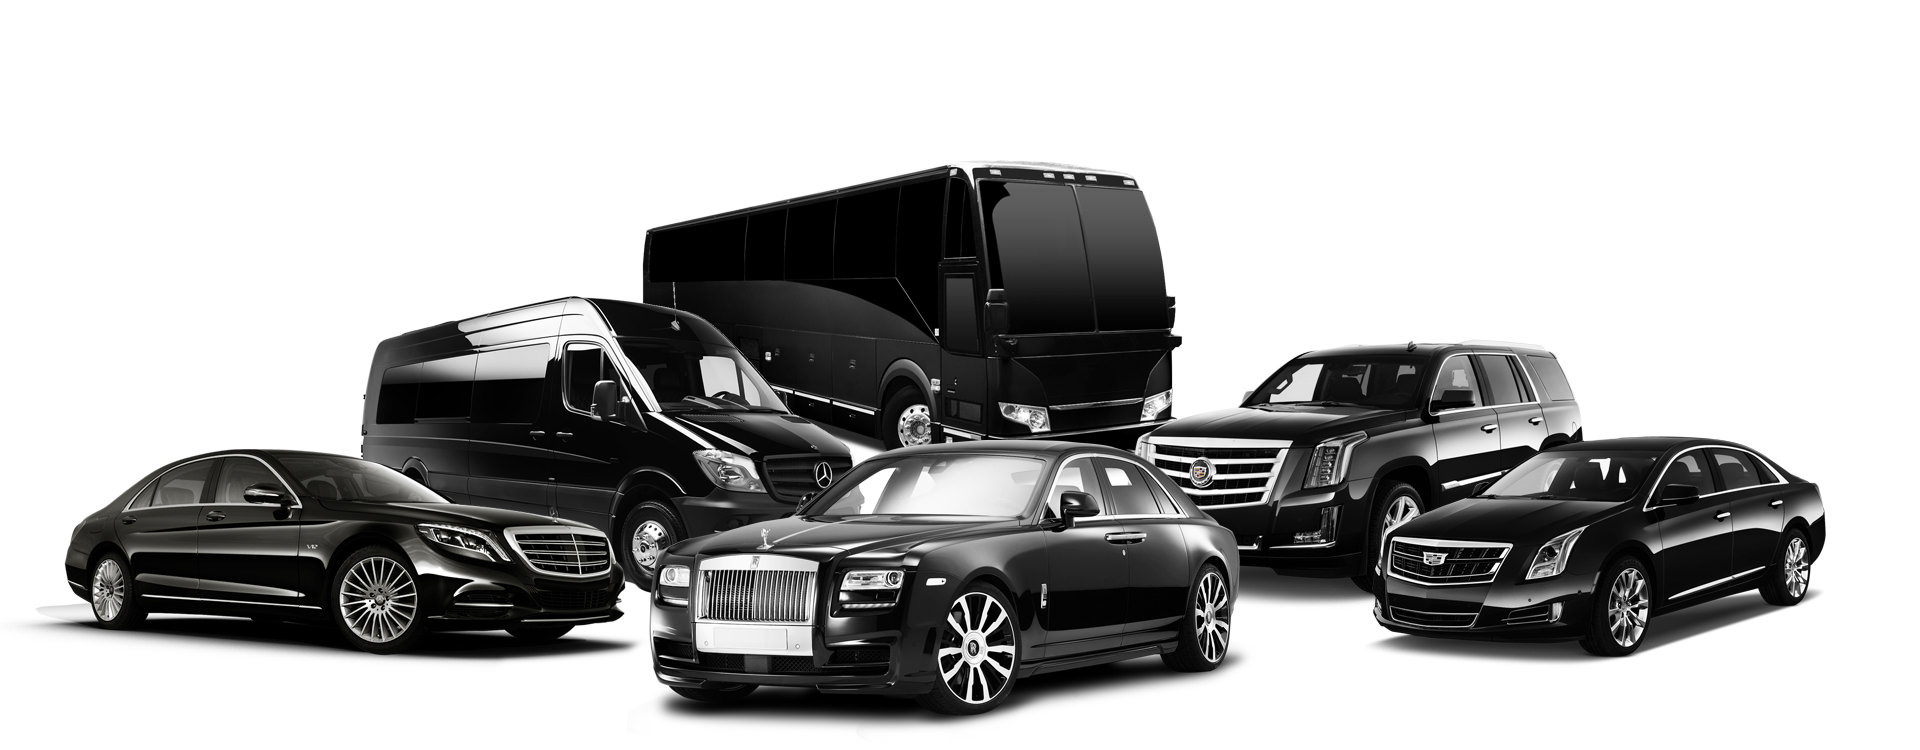 Global Executive Chauffeur Service | Luxury Ride USA